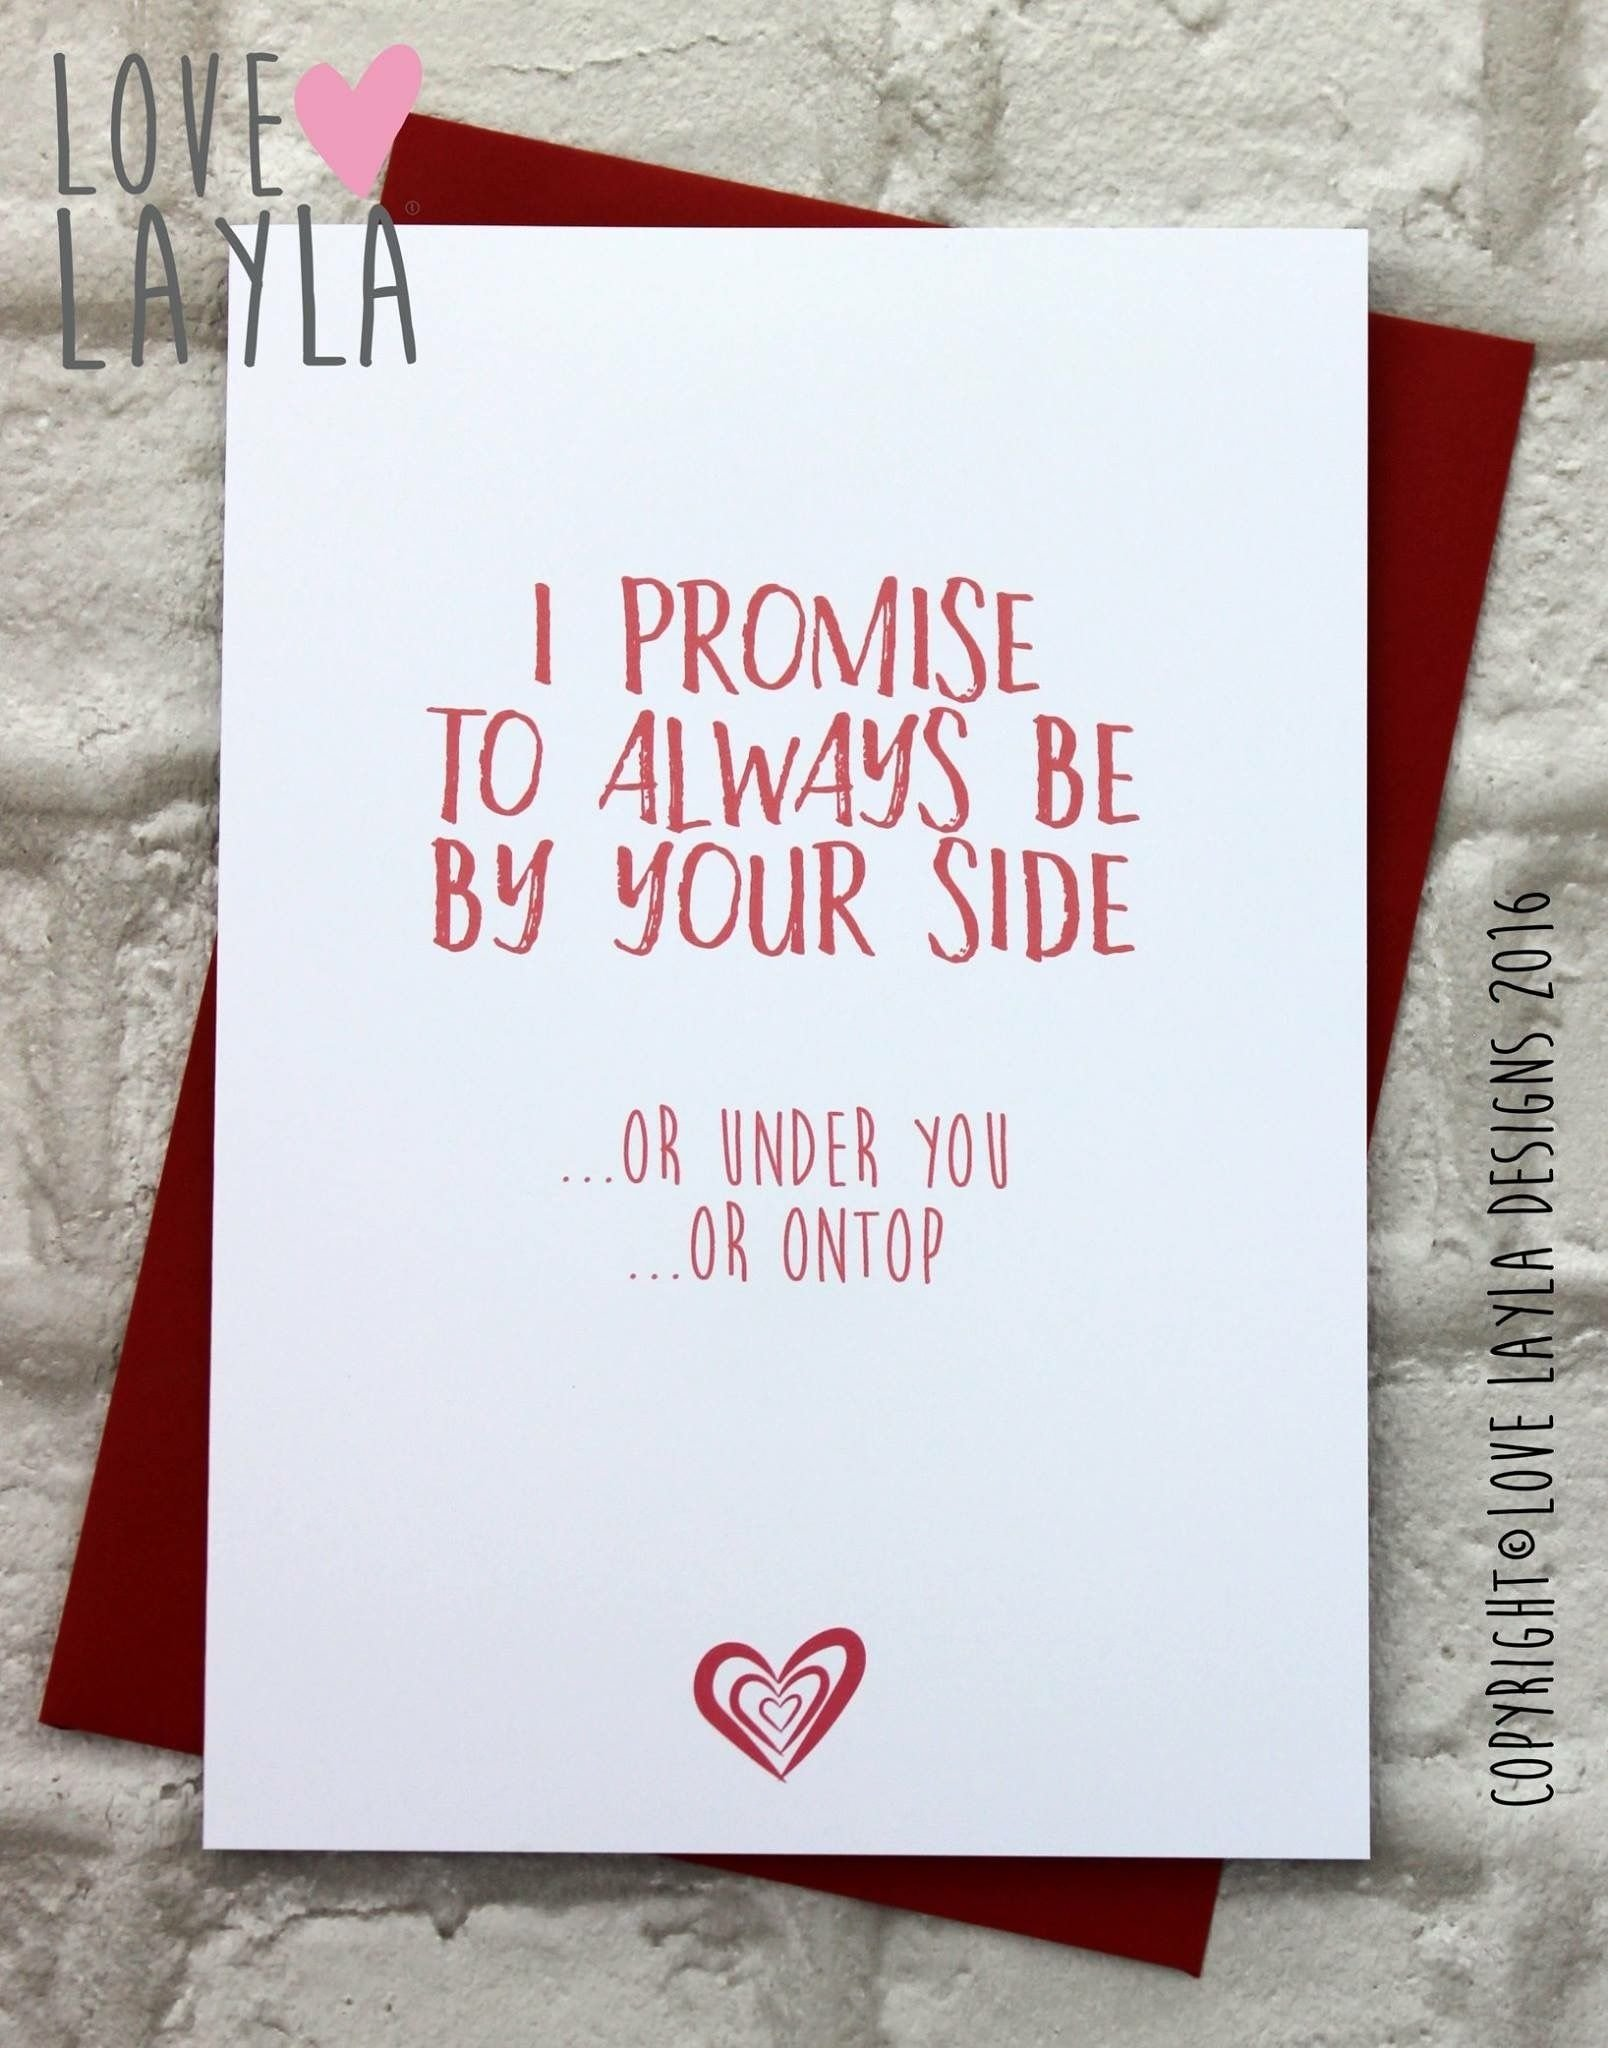 pinkhyati shah on greeting cards | pinterest | cards, gift and